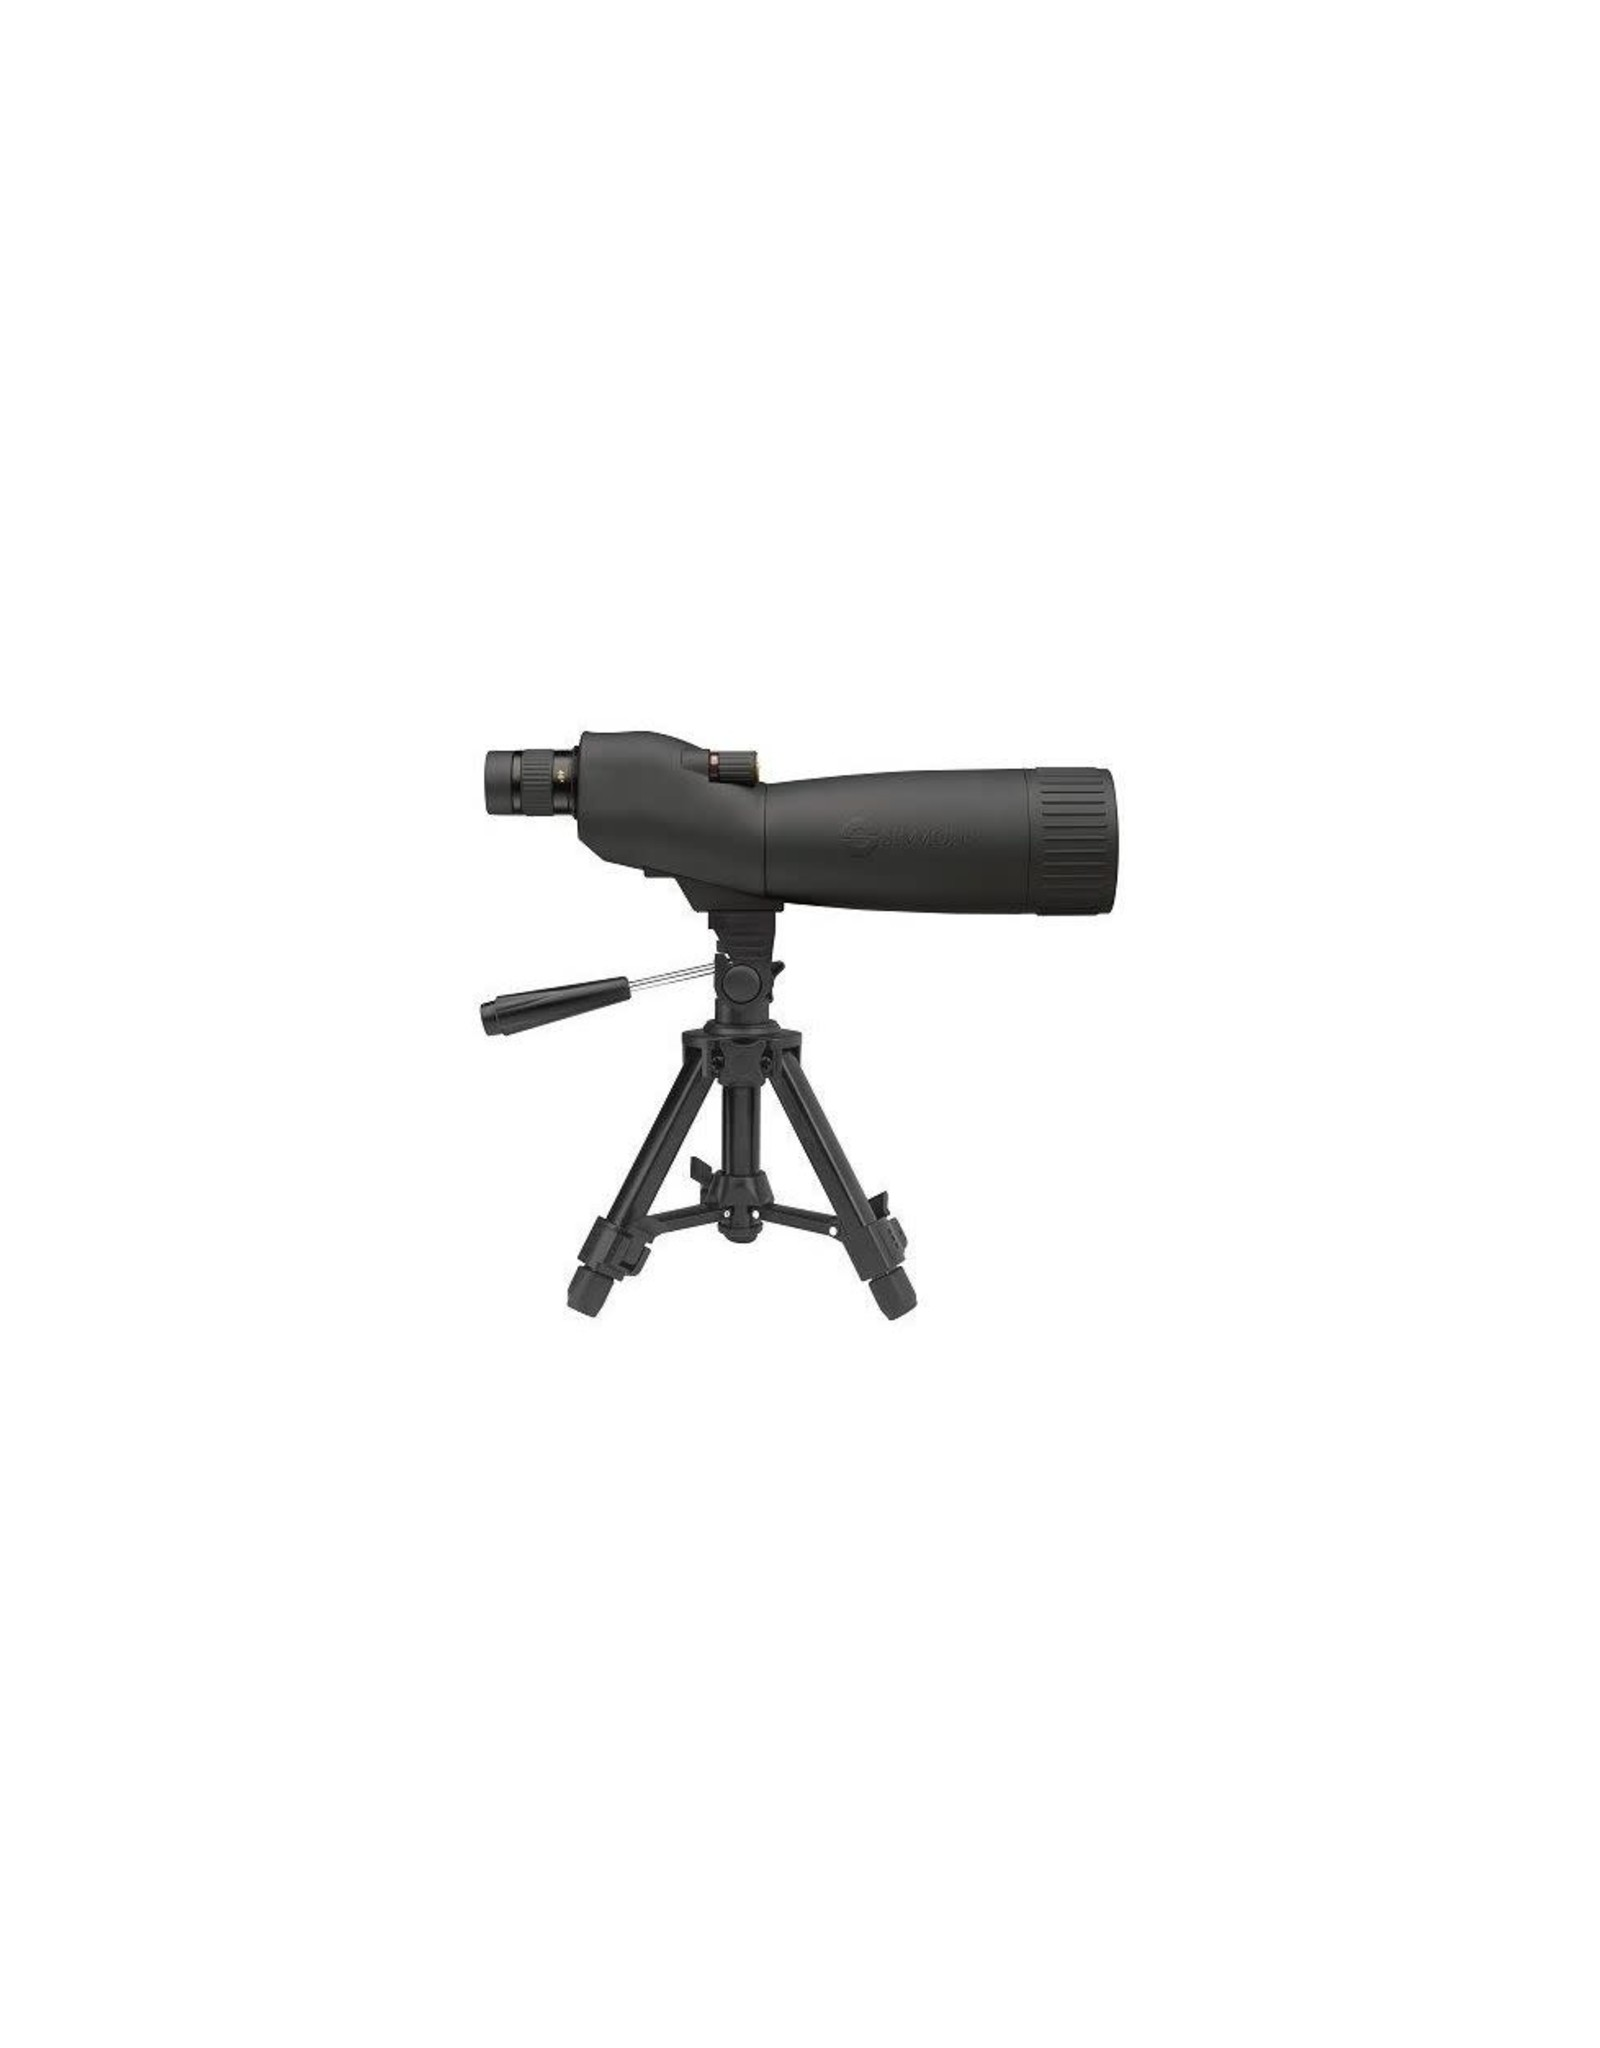 SIMMONS Simmons Venture 20-60x80mm Spotting Scope